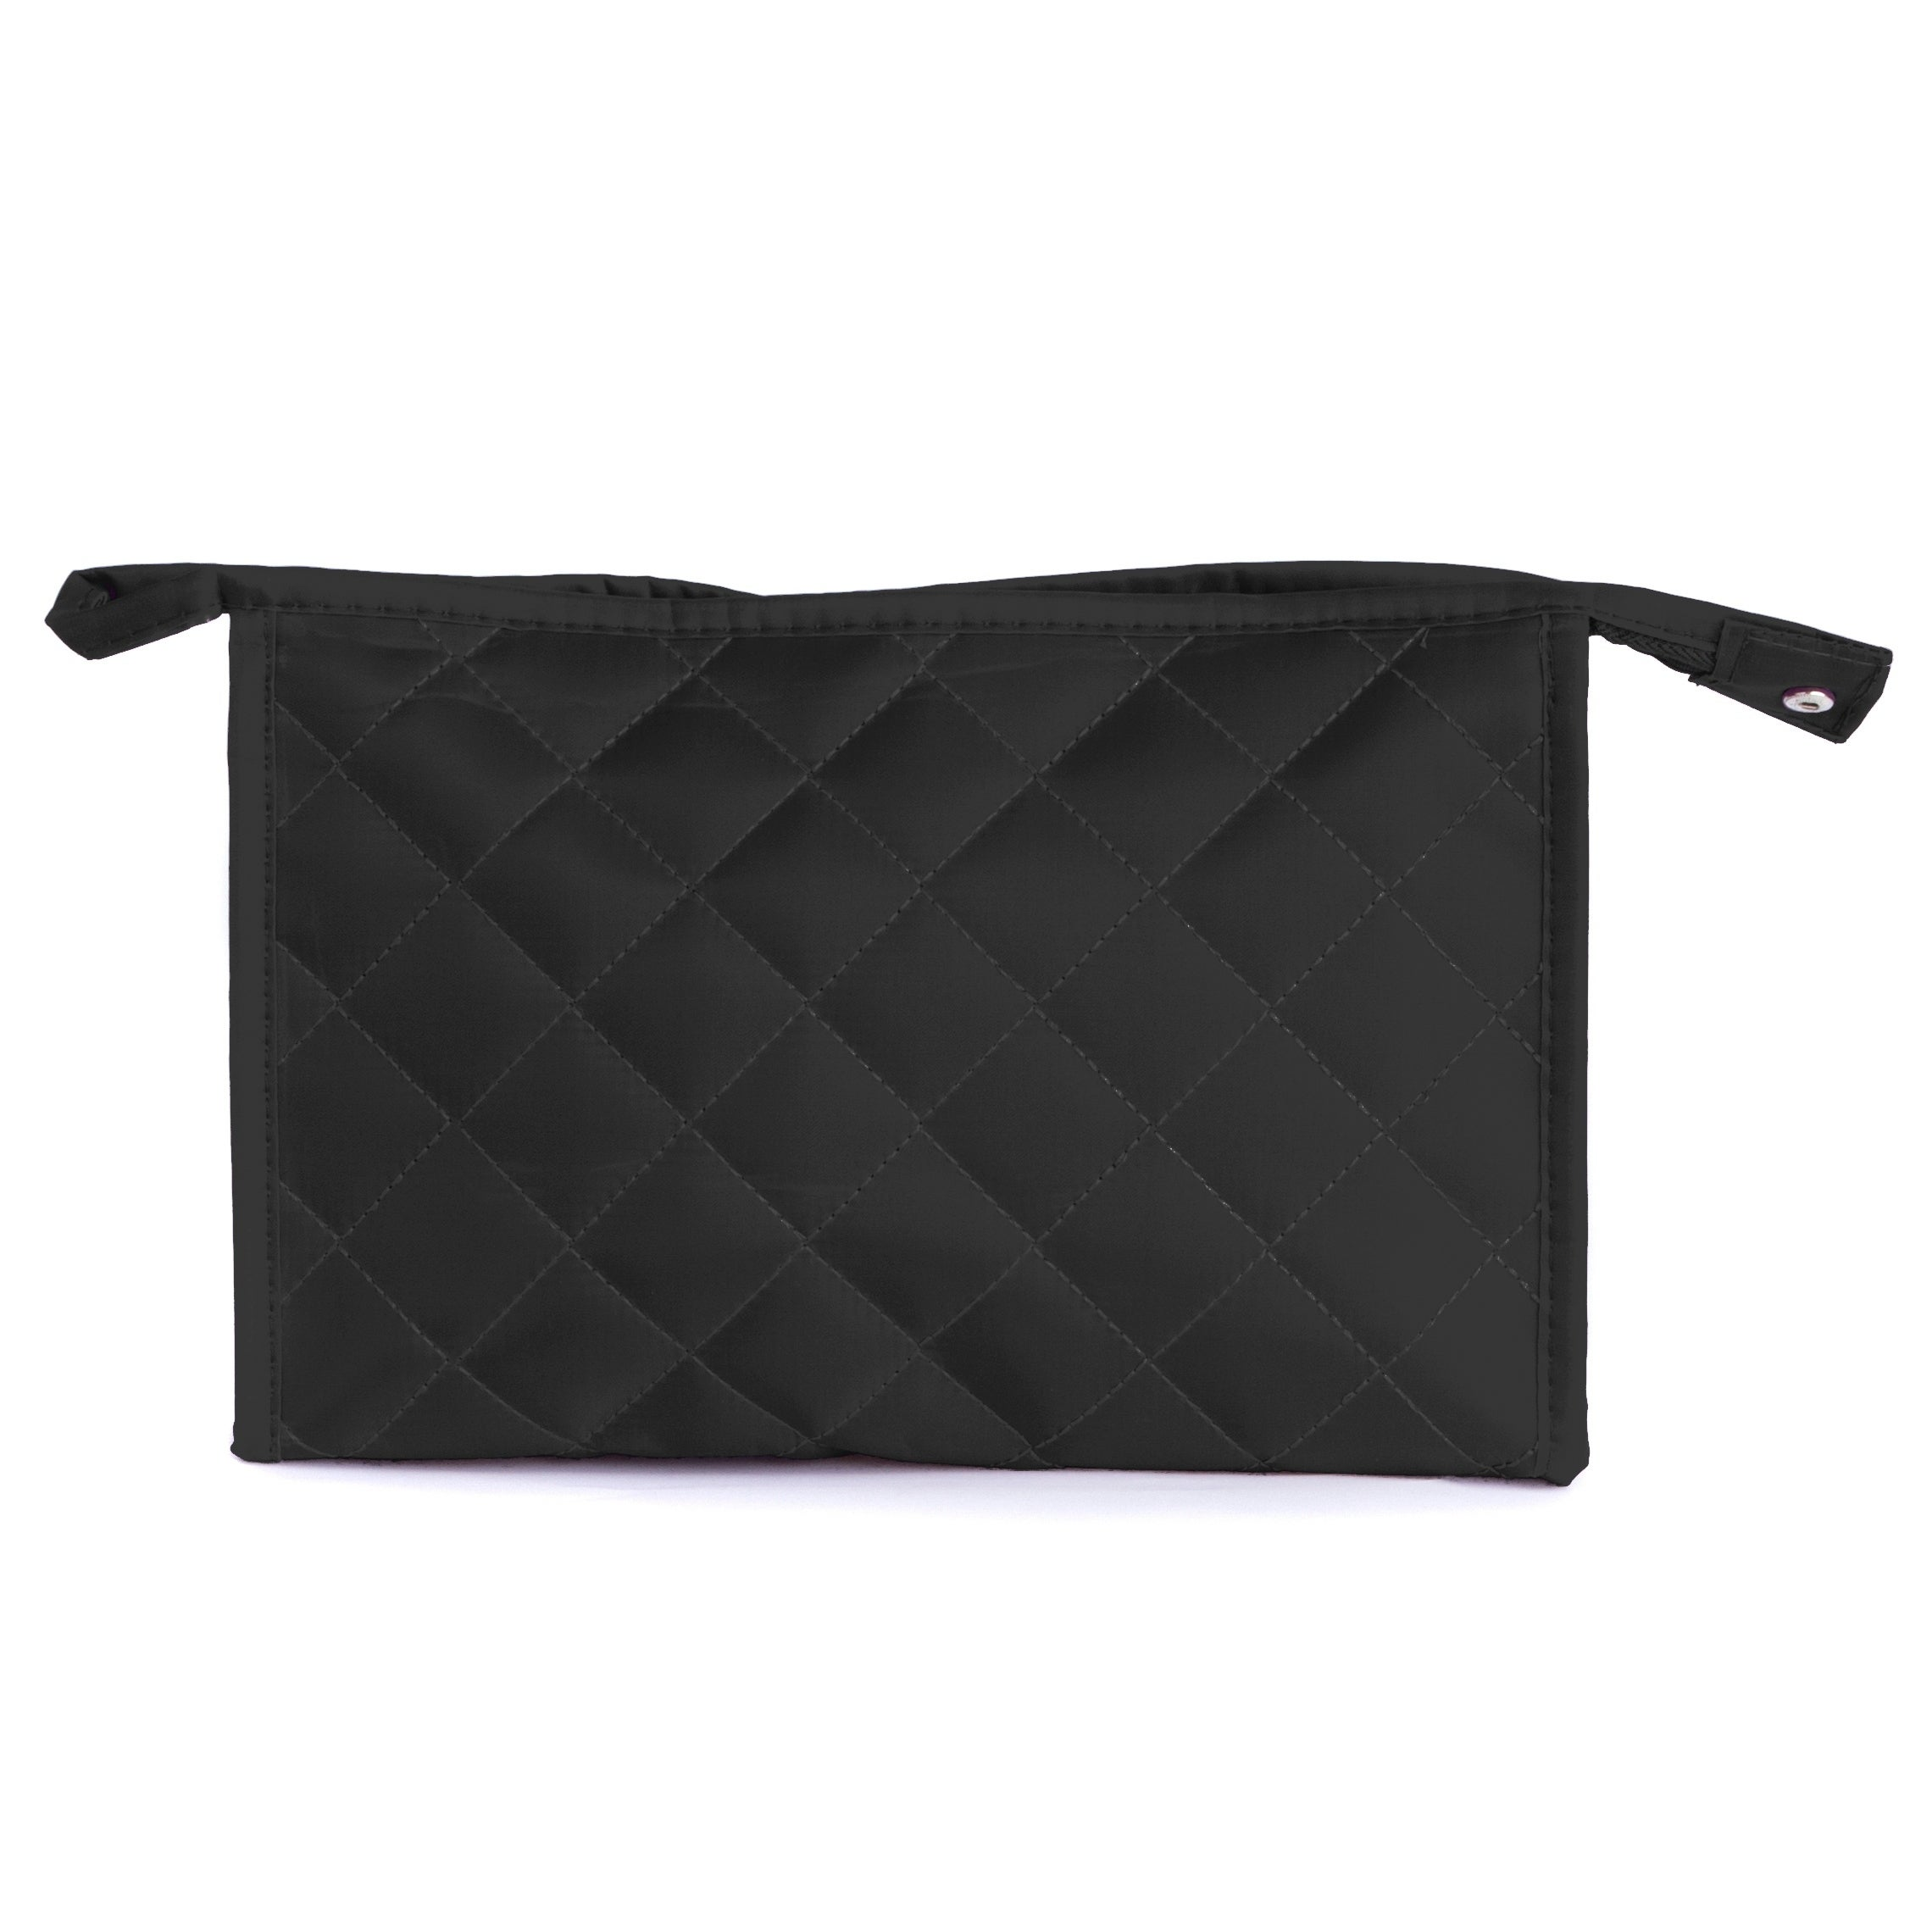 a2c90a5ab473 Shop Leisureland Water Resistant Quilted Cosmetic Bag